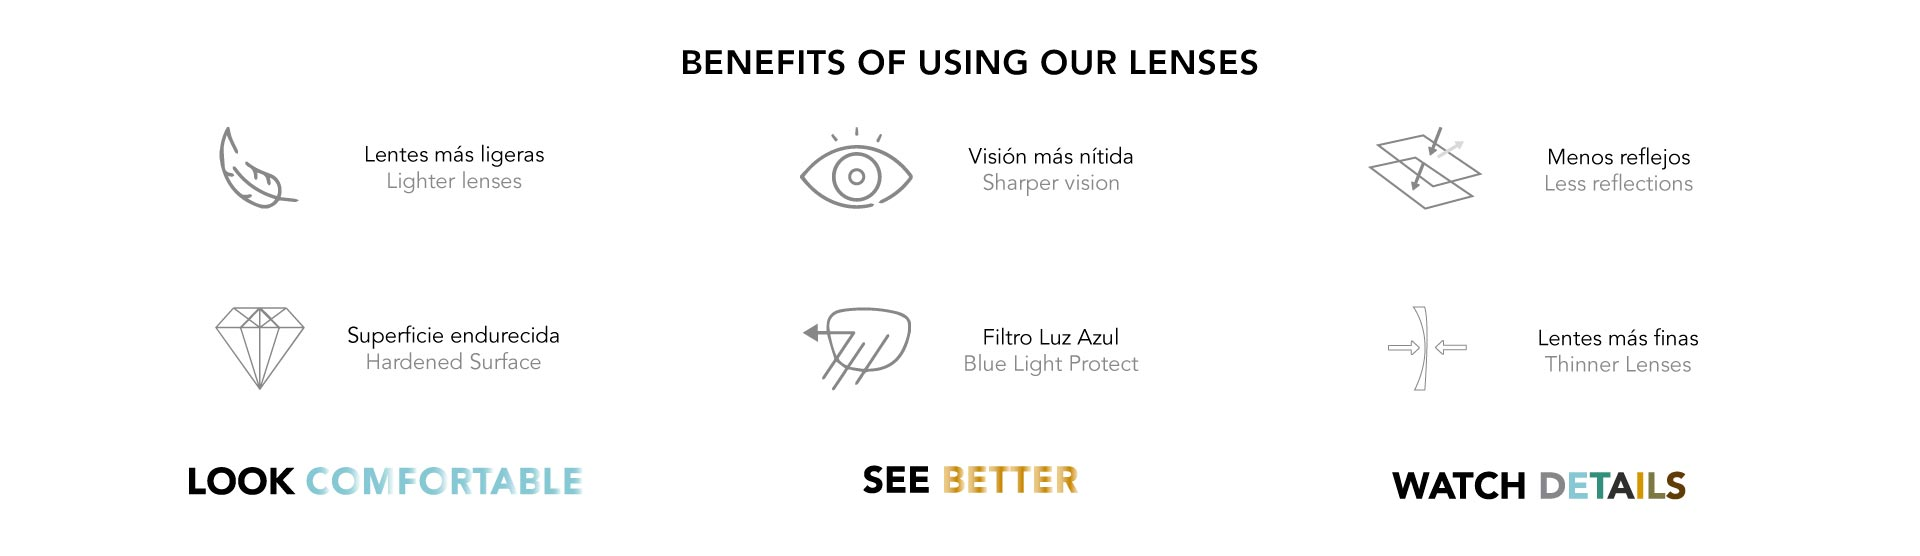 ZEISS PREMIUM LENSES